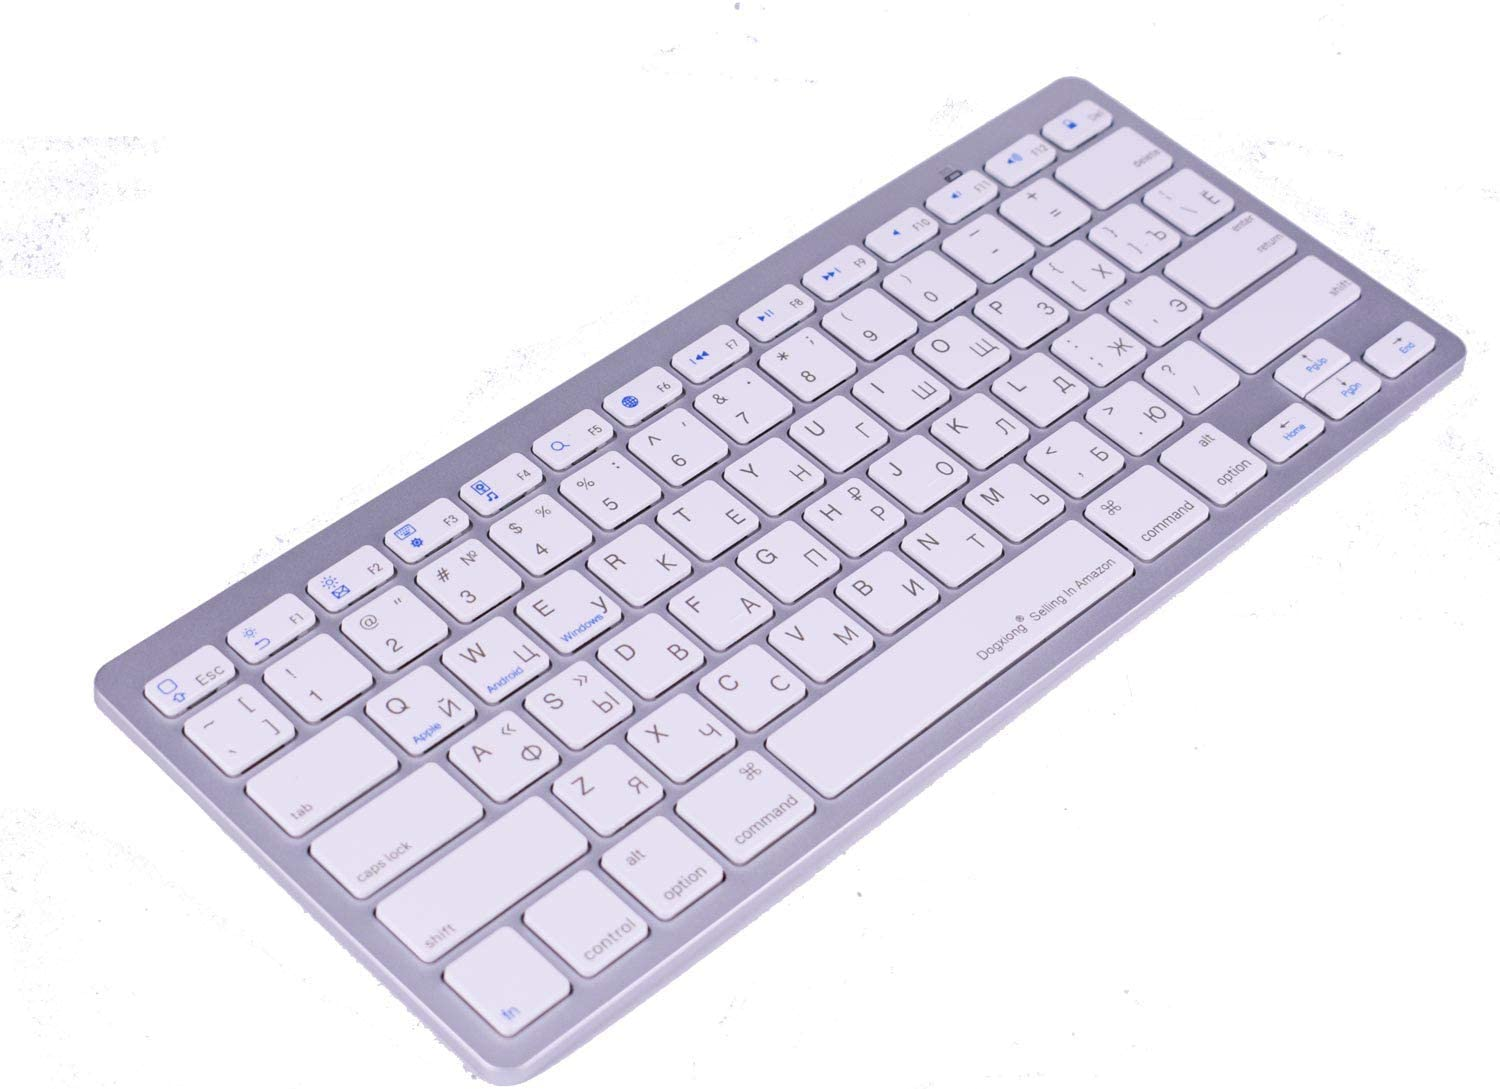 Work Efficiency Russian Language Functional Shortcuts Hotkey Wireless Bluetooth Keyboard for Dell Thinkpad iMac MacBook Pro,iPad Pro 11 12.9, iPad Air Mini,iPhone X XS XR MAX Surface Pro 4 5 6 7